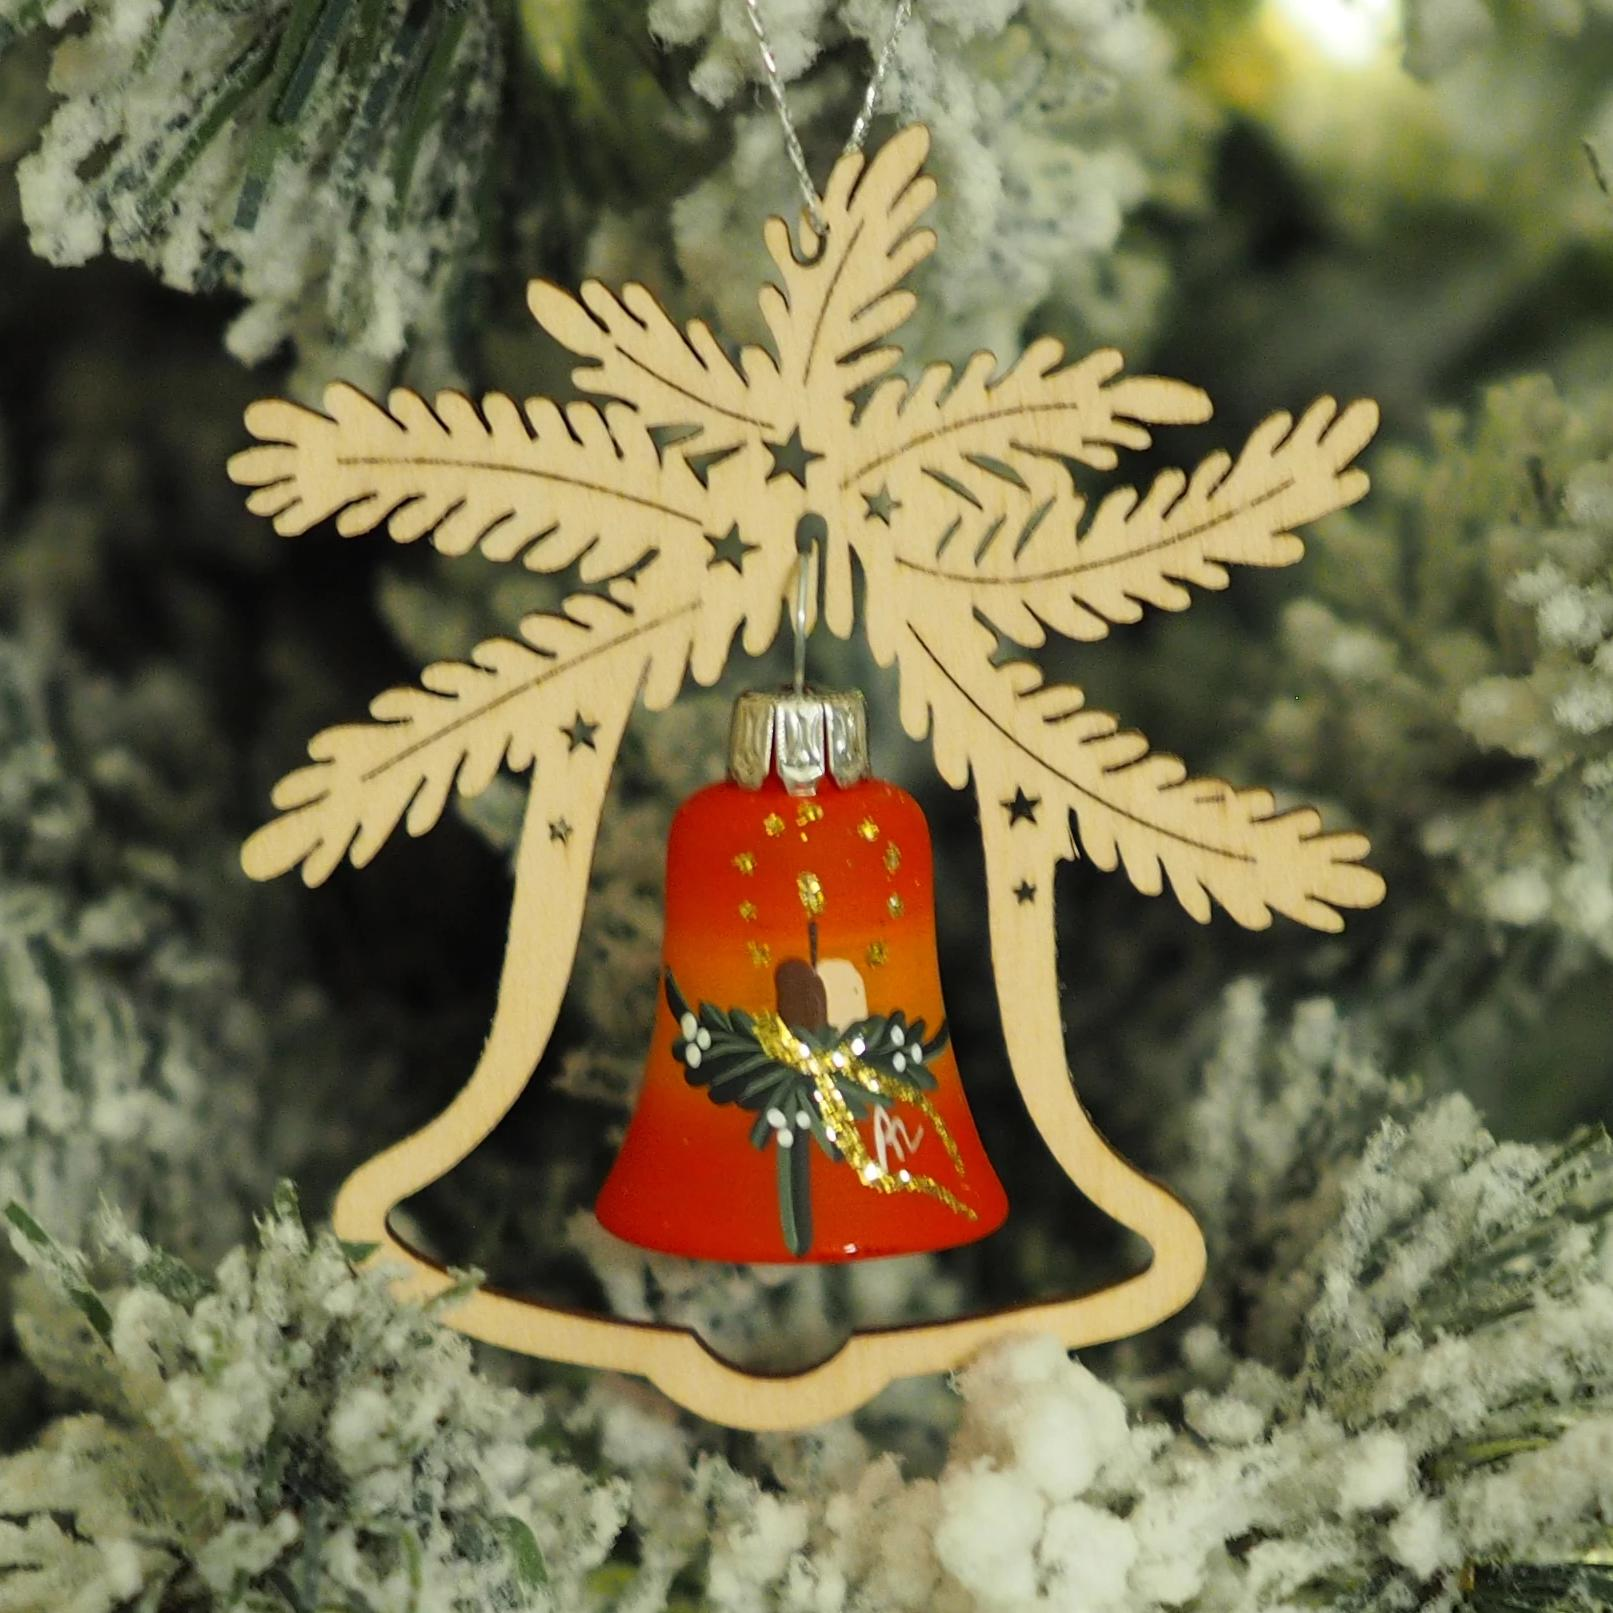 Elke's Bell (Advent Candle) - Christmas tree decoration